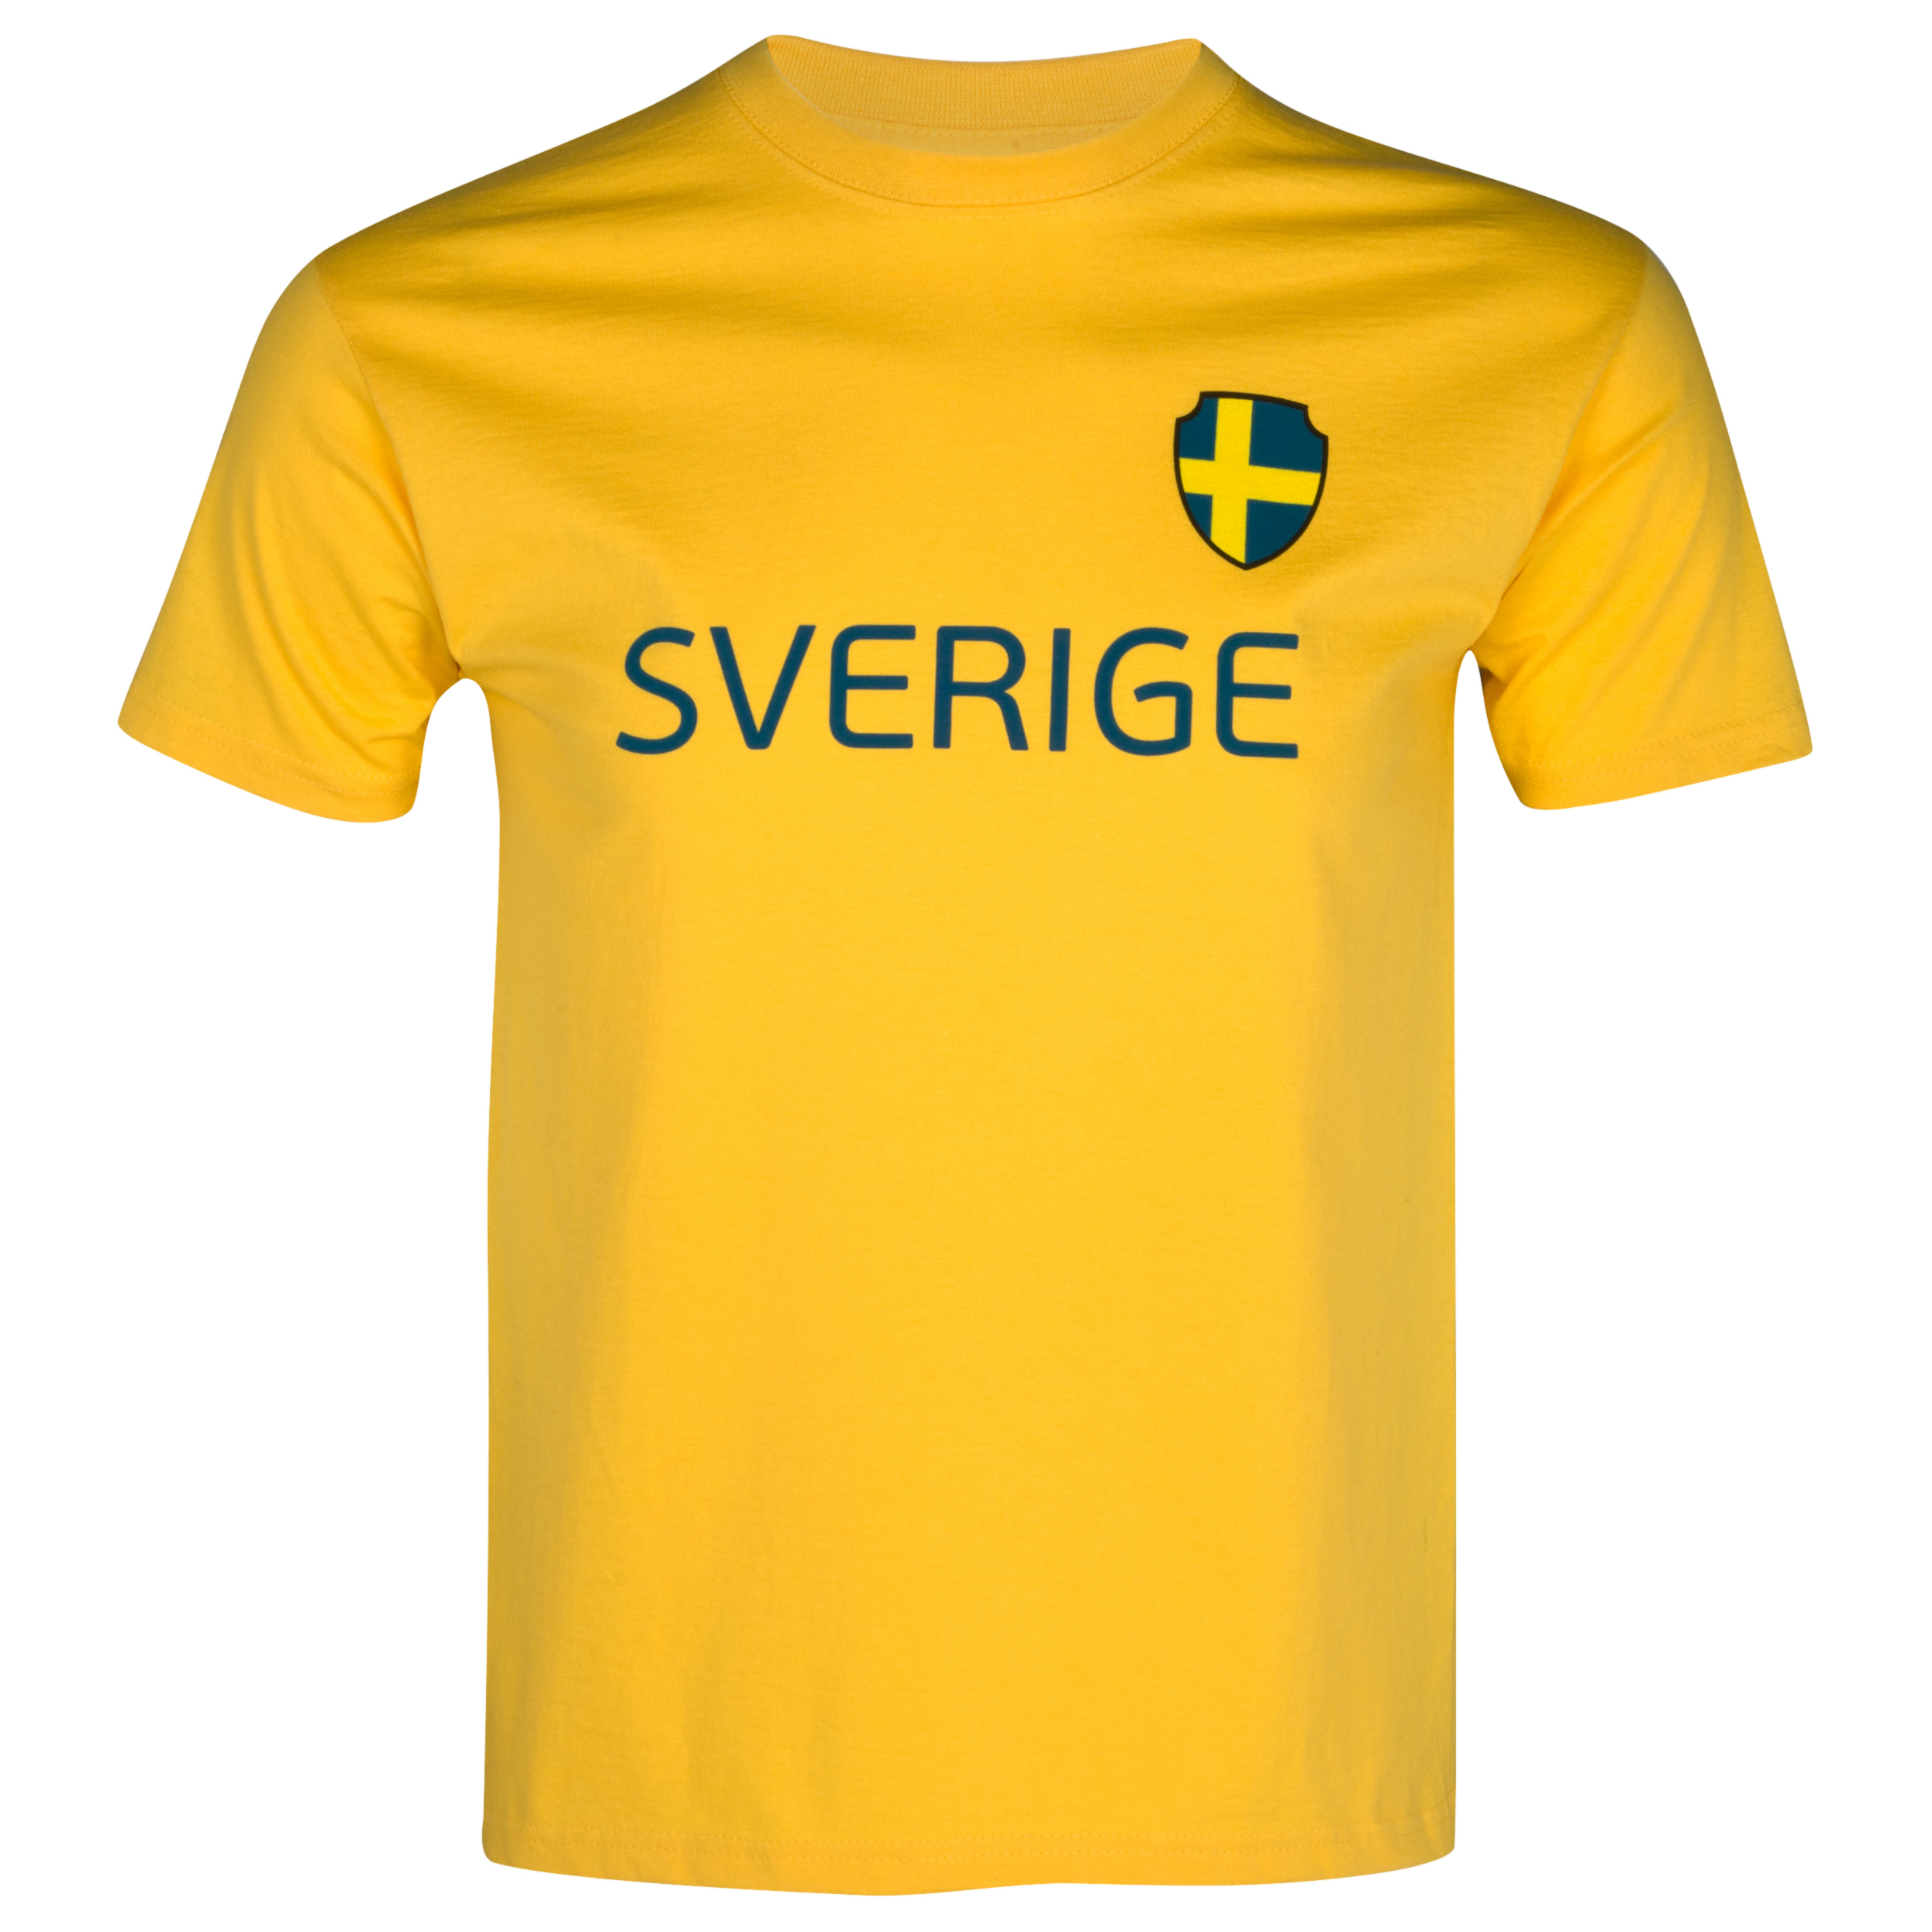 Euro 2012 Sweden T-Shirt - Yellow/Blue